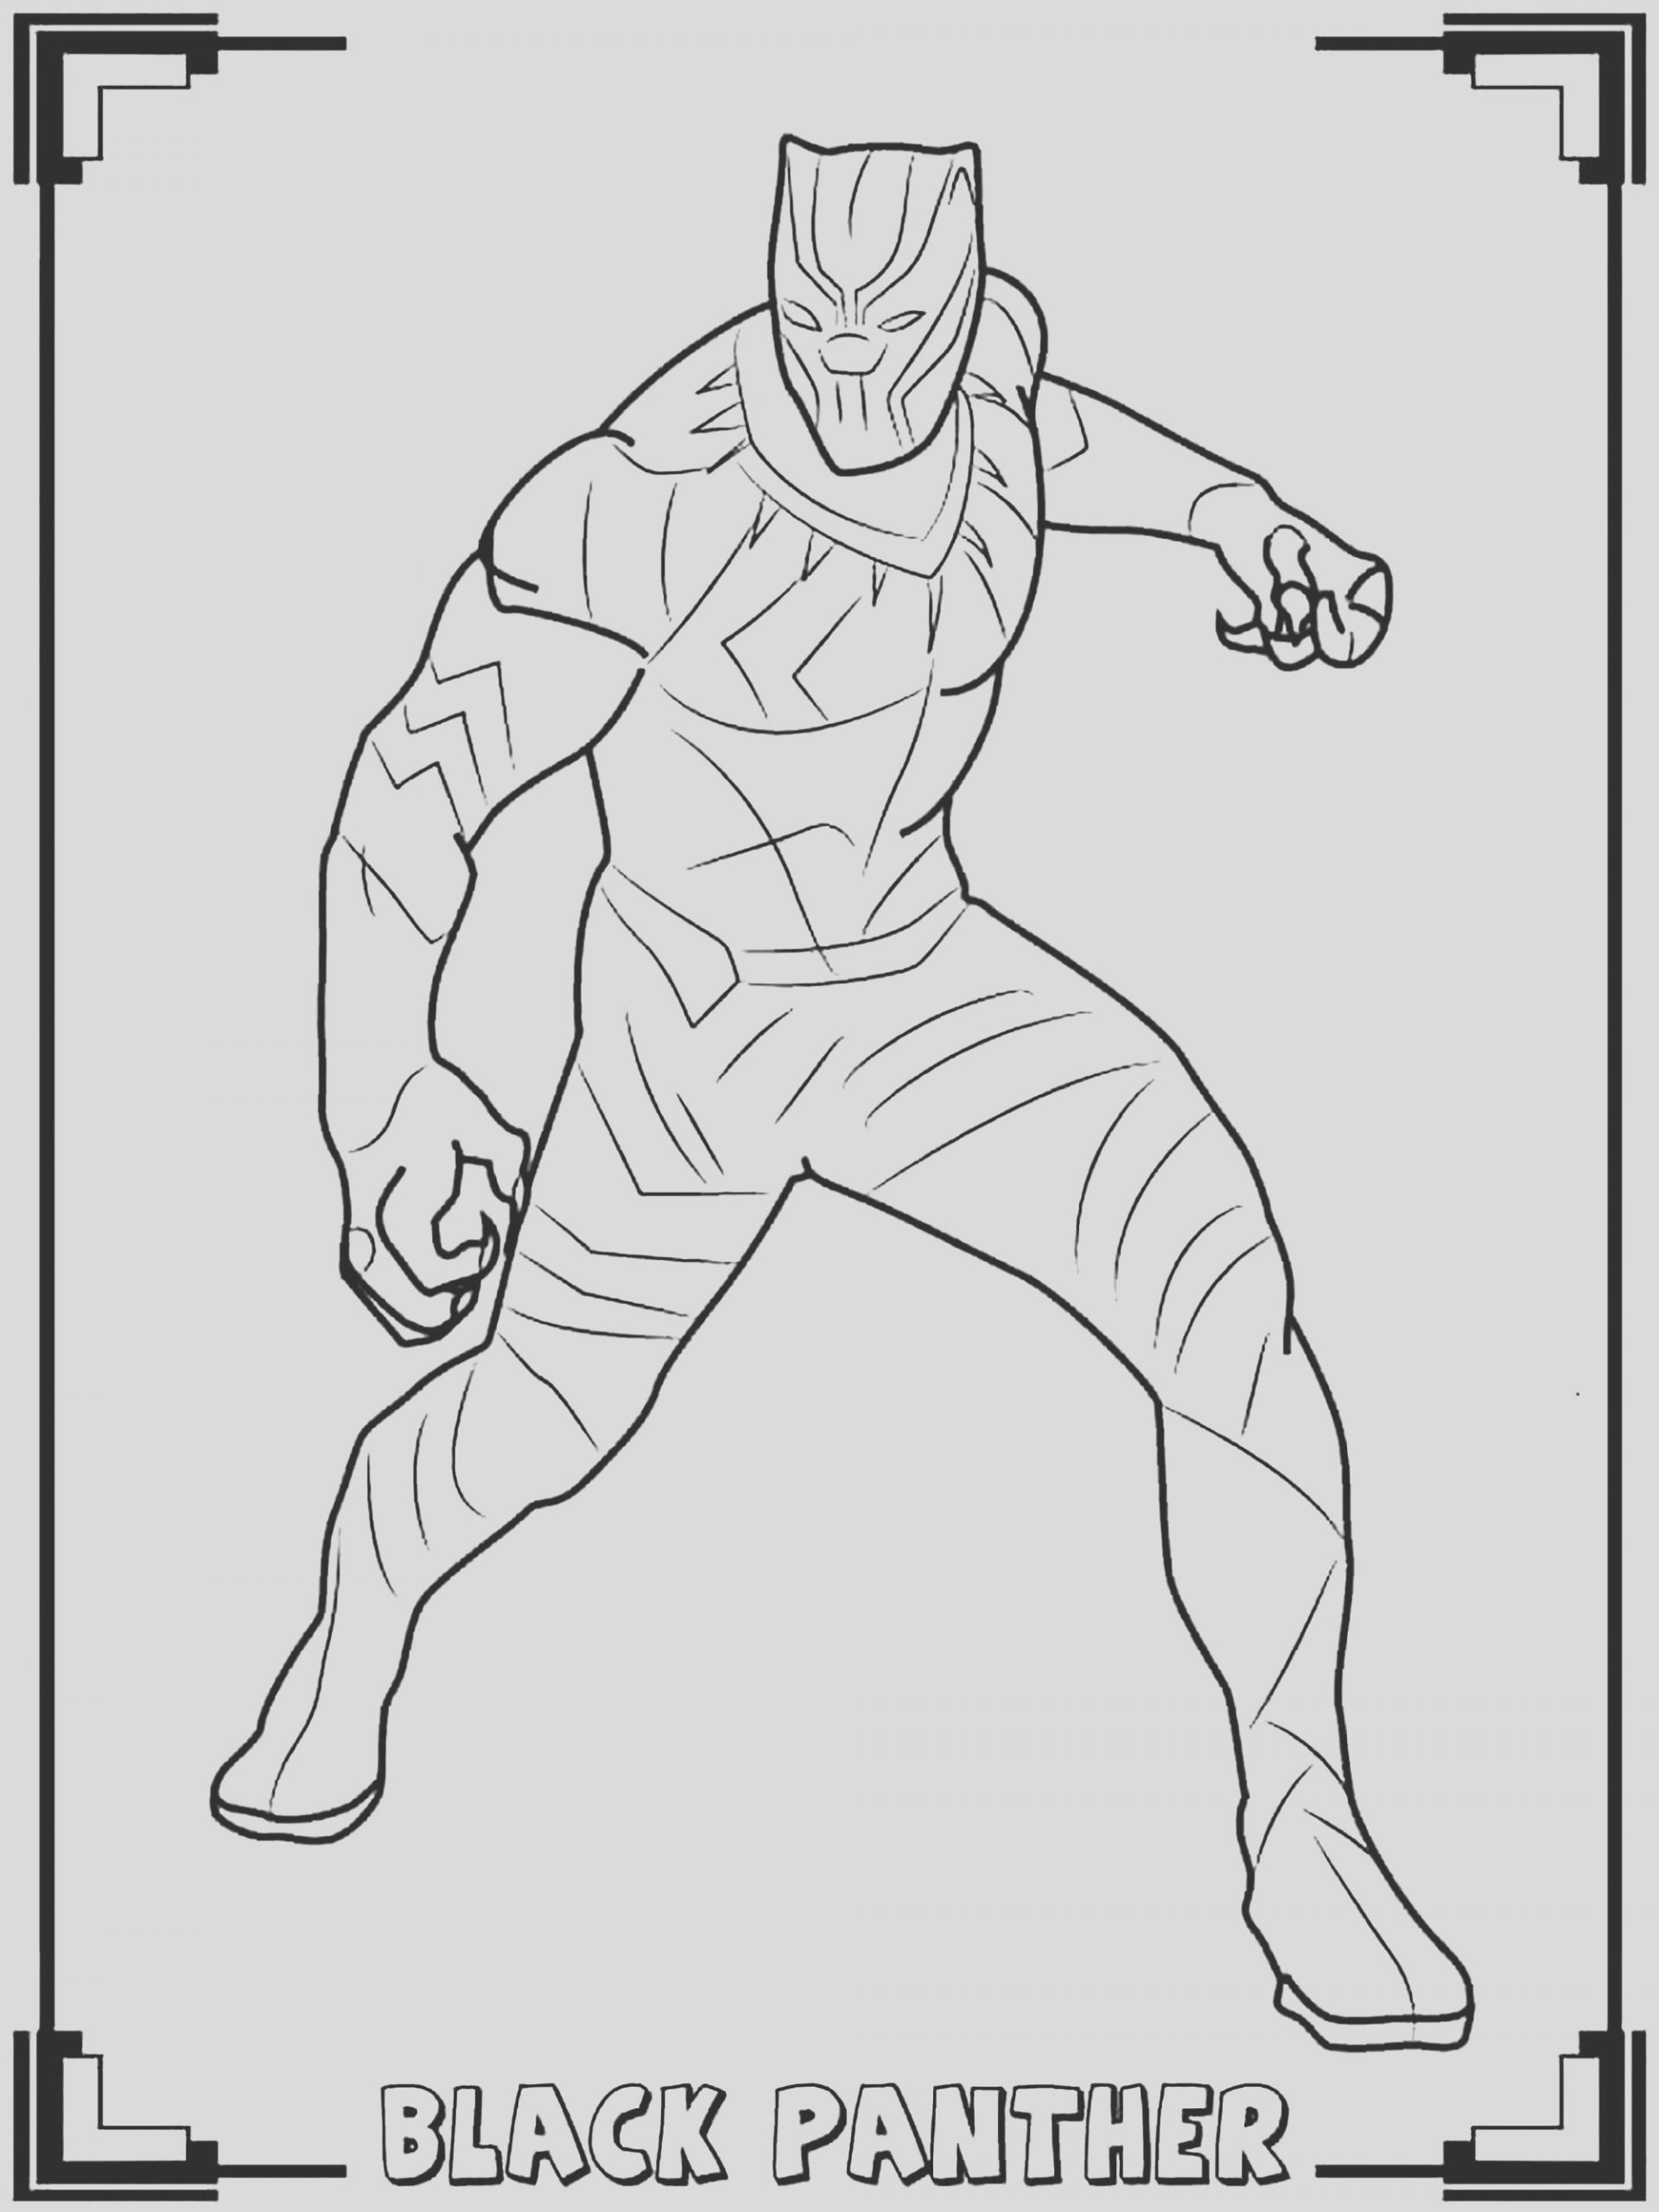 image=black panther coloring pages for children black panther 1